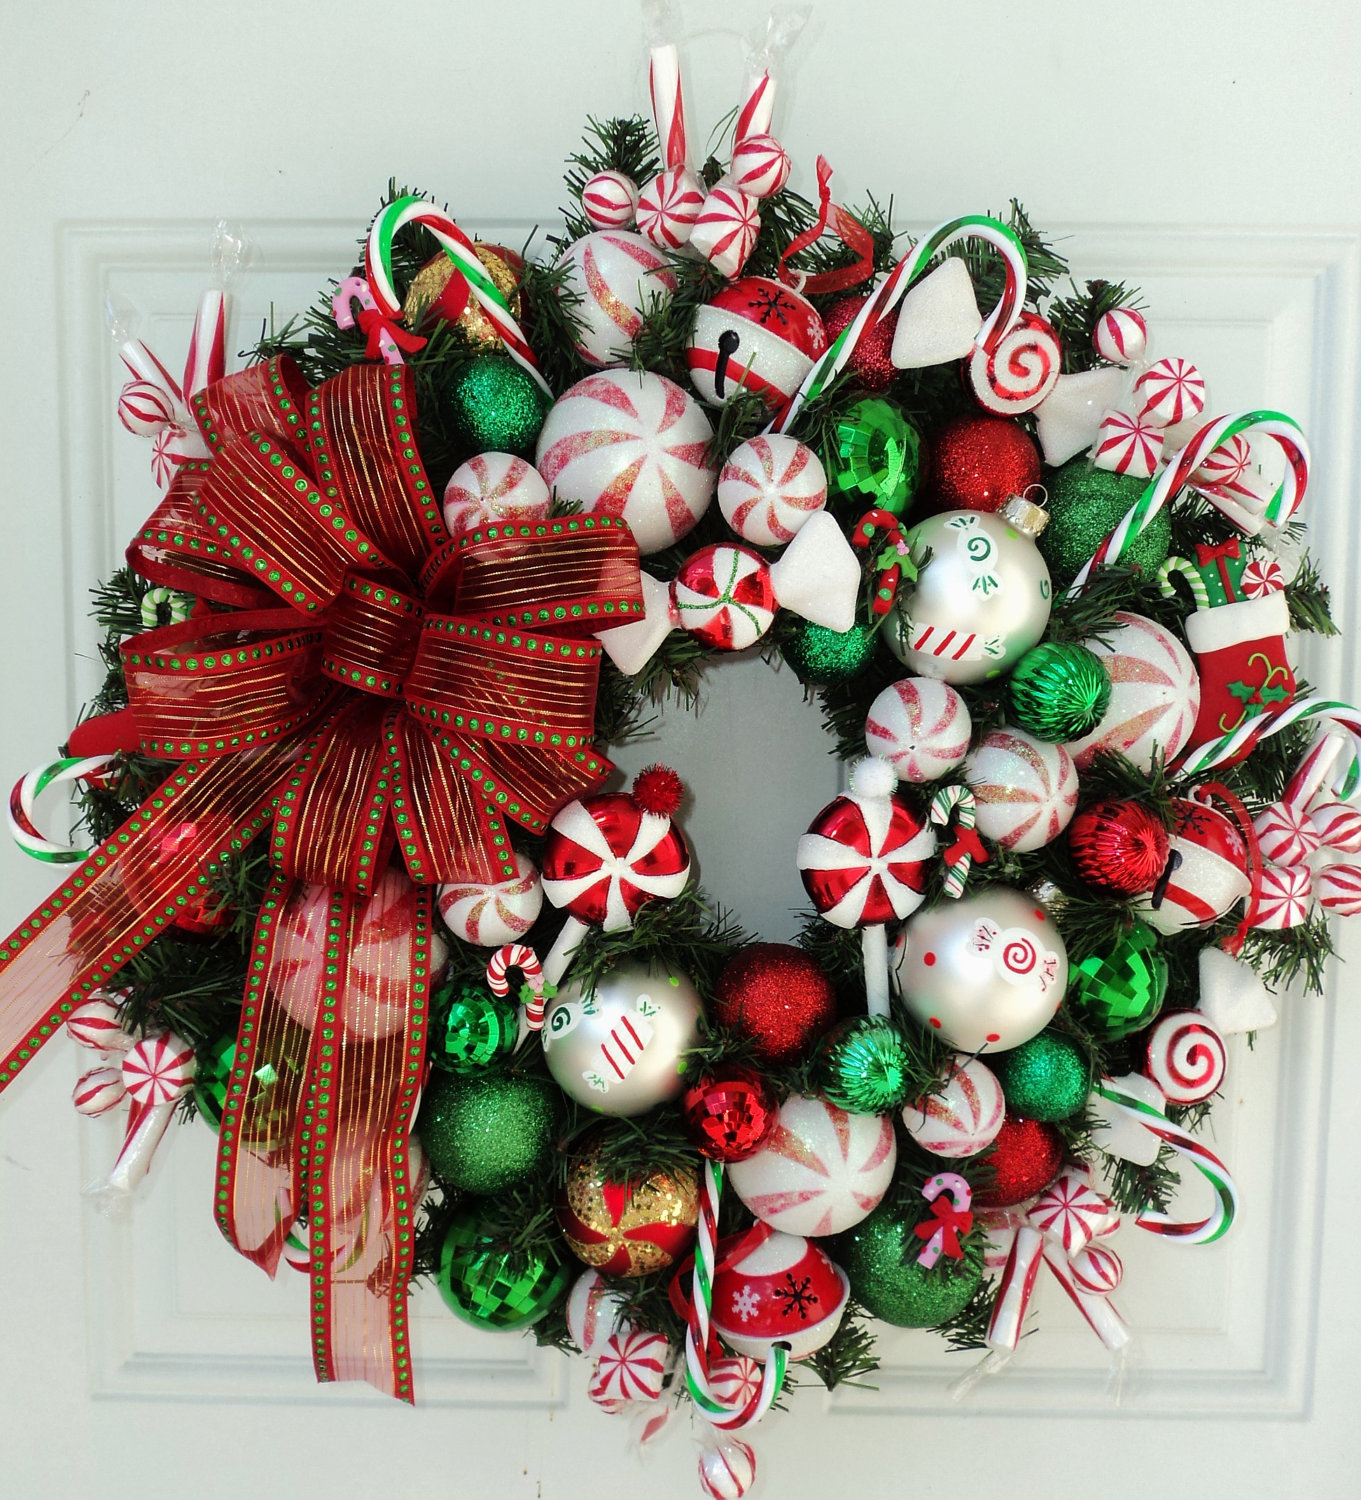 Make a diy christmas wreaths yourself to celebrate the holiday diy christmas wreaths 8 solutioingenieria